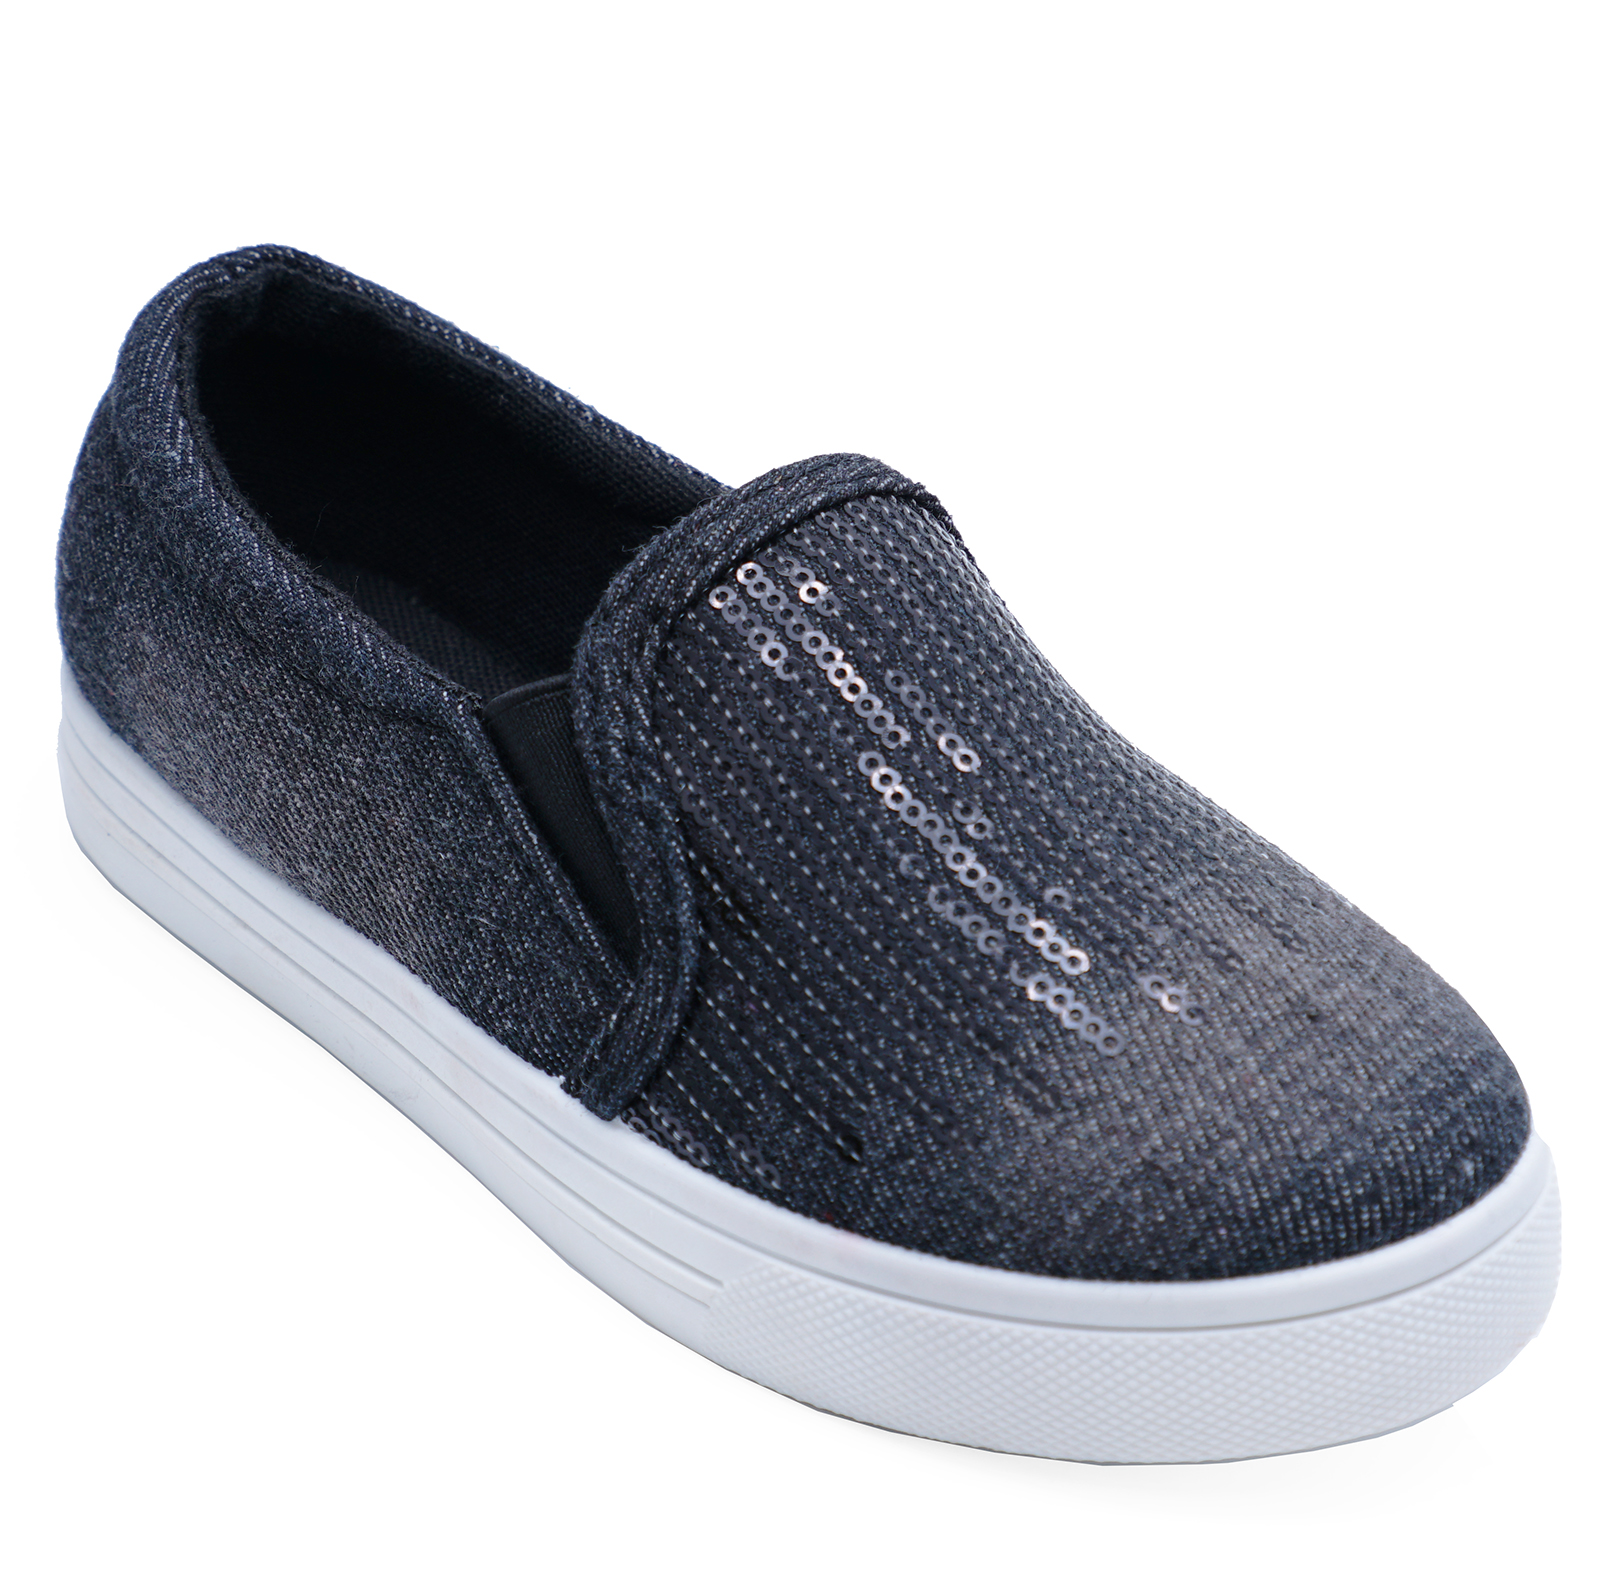 c07d06e5fa9 Sentinel CHILDRENS KIDS GIRLS BLACK SLIP-ON CASUAL SHOES TRAINERS DANCE  PUMPS SIZES 8-1